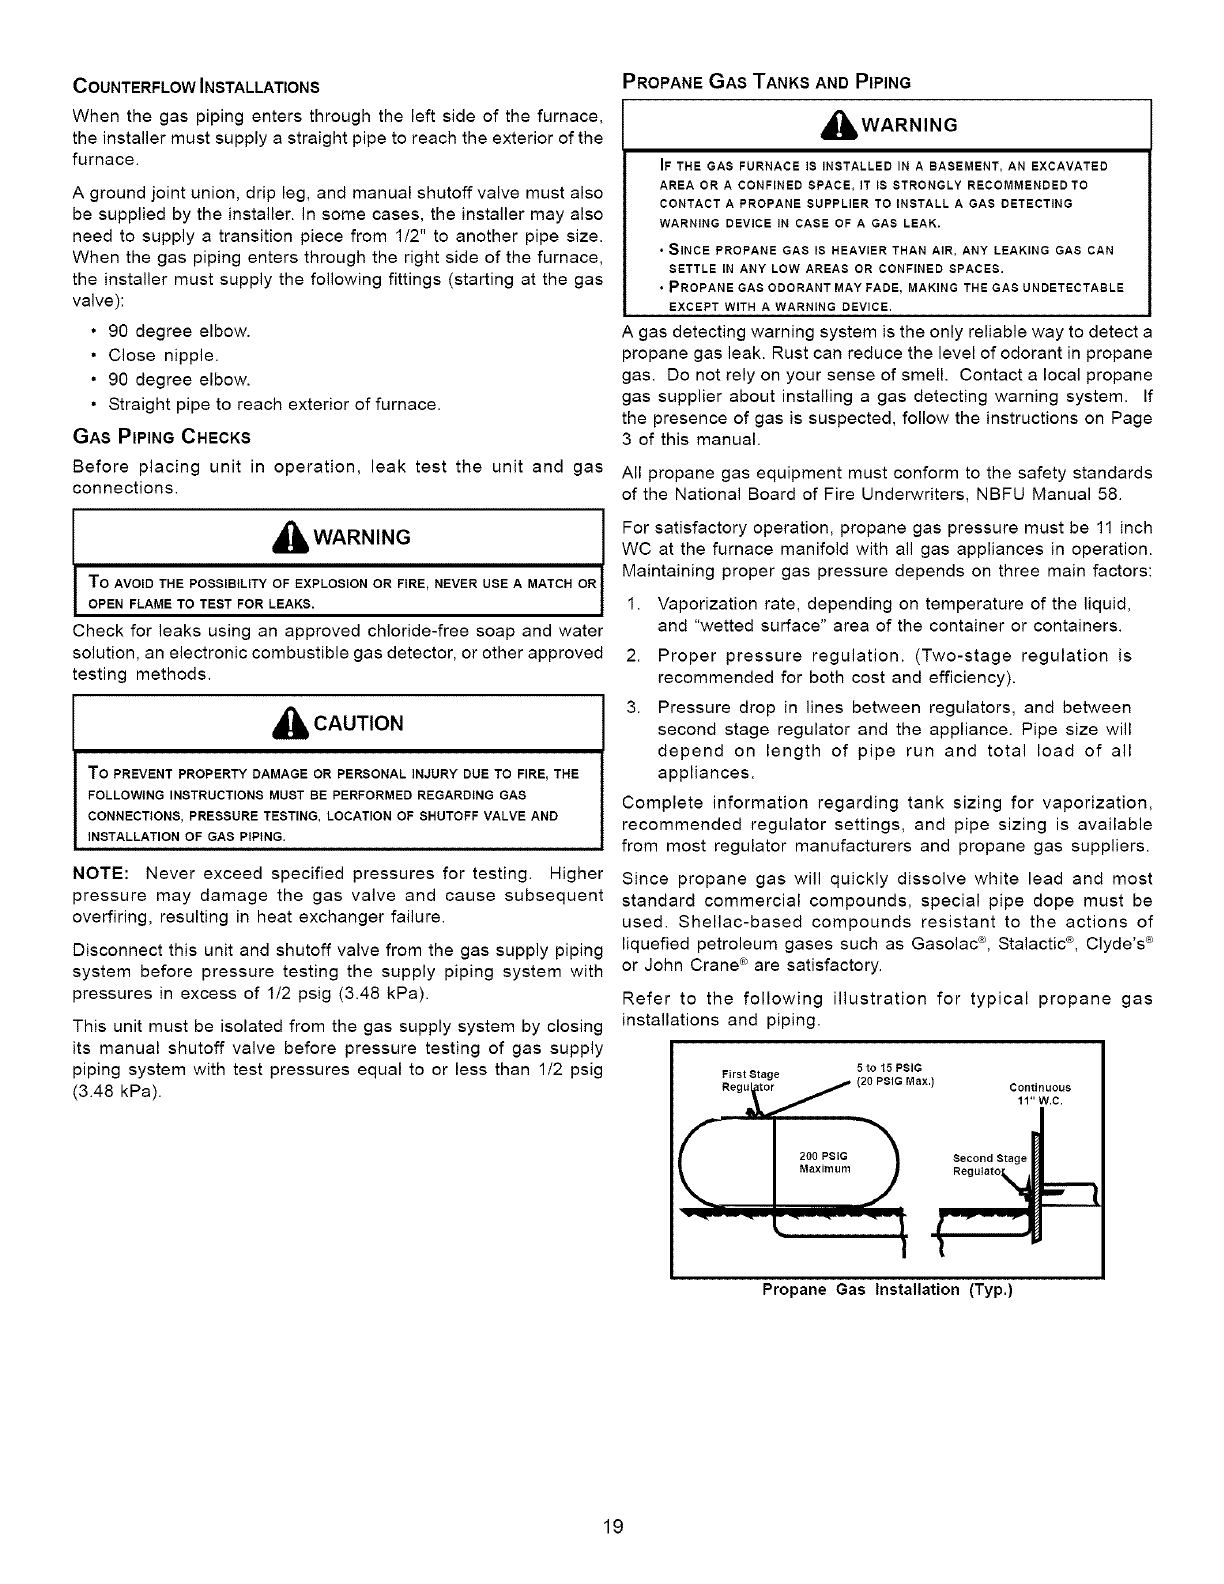 GOODMAN Furnace/Heater, Gas Manual L0806733 on gas valve connector, gas valve components diagram, gas valve adjustments, gas valve control panel, gas valve specifications, gas valve plug, gas furnace thermostat wiring, gas valve parts, gas fireplace wiring-diagram, gas valve replacement, gas wall heater thermostat wiring, gas valve cover, controls for gas valve diagram, gas valve troubleshooting, gas valve schematic diagram, gas valve key, gas valve coil, gas valve box, 3 way valve diagram, gas fireplace thermostat wiring,